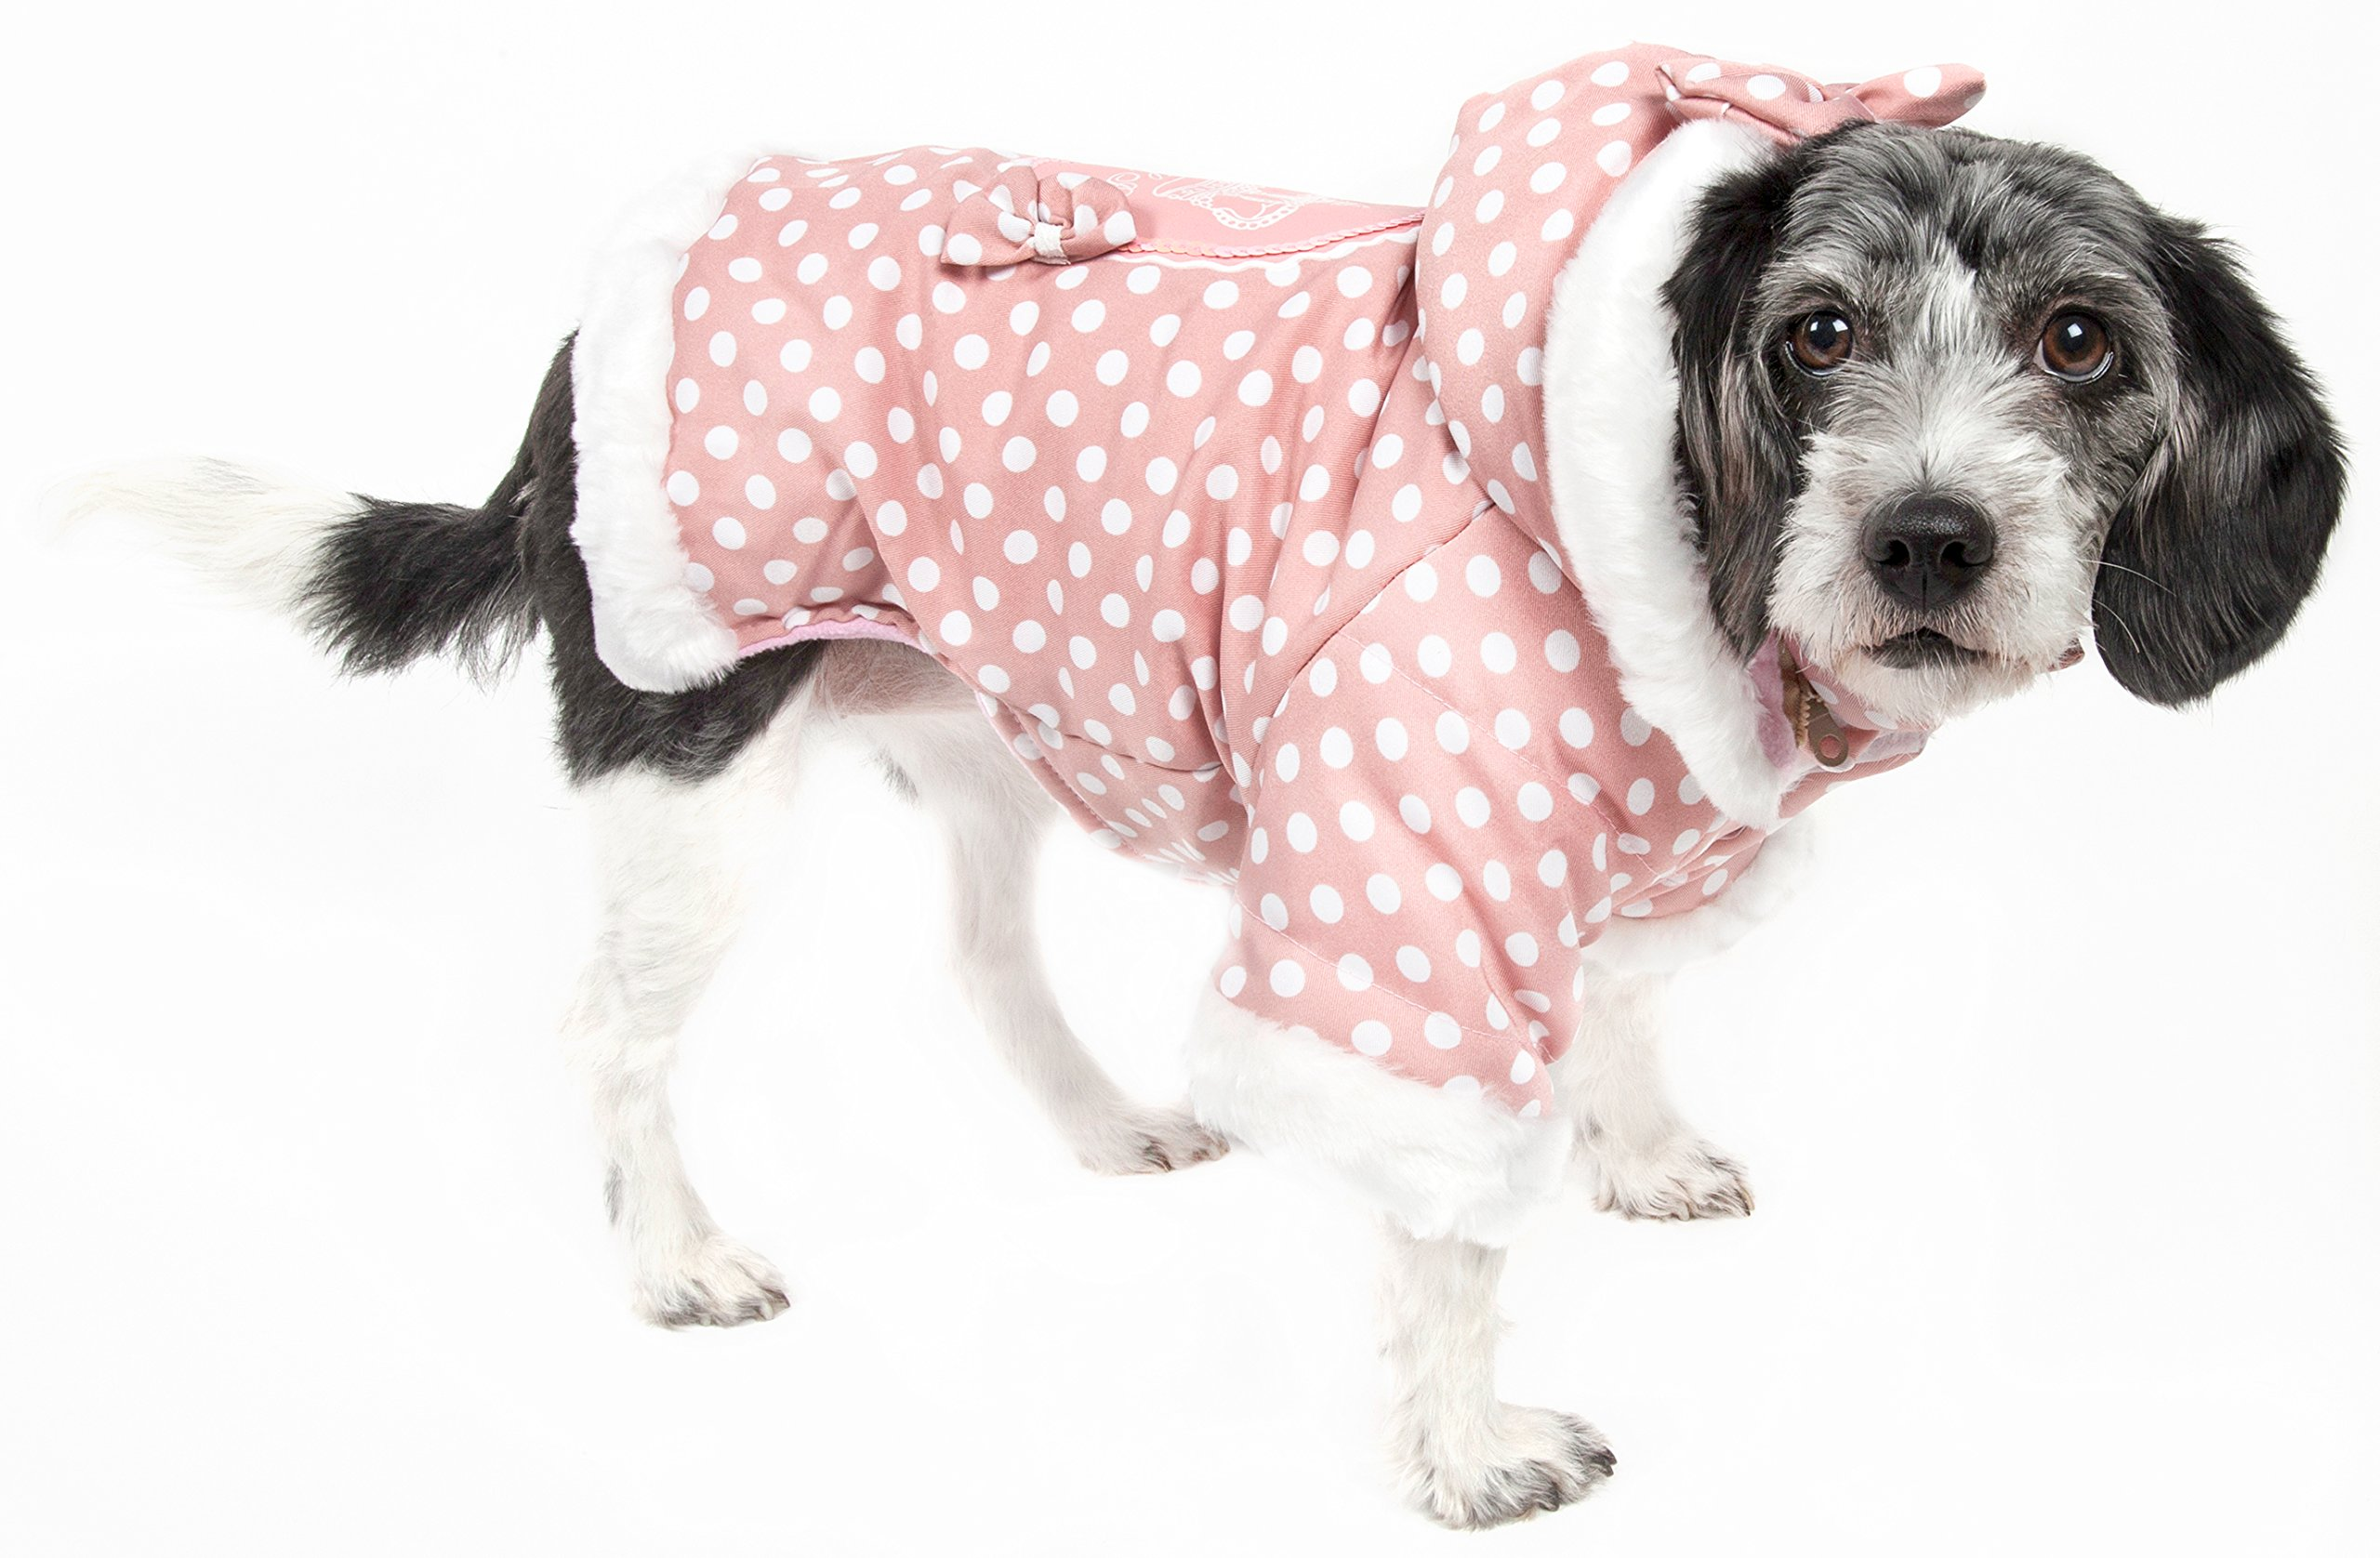 Pet Life Couture-Bow' Polka Dot Designer Fashion Pet Dog Hooded Sweater Hoodie, Small, Pink Polka